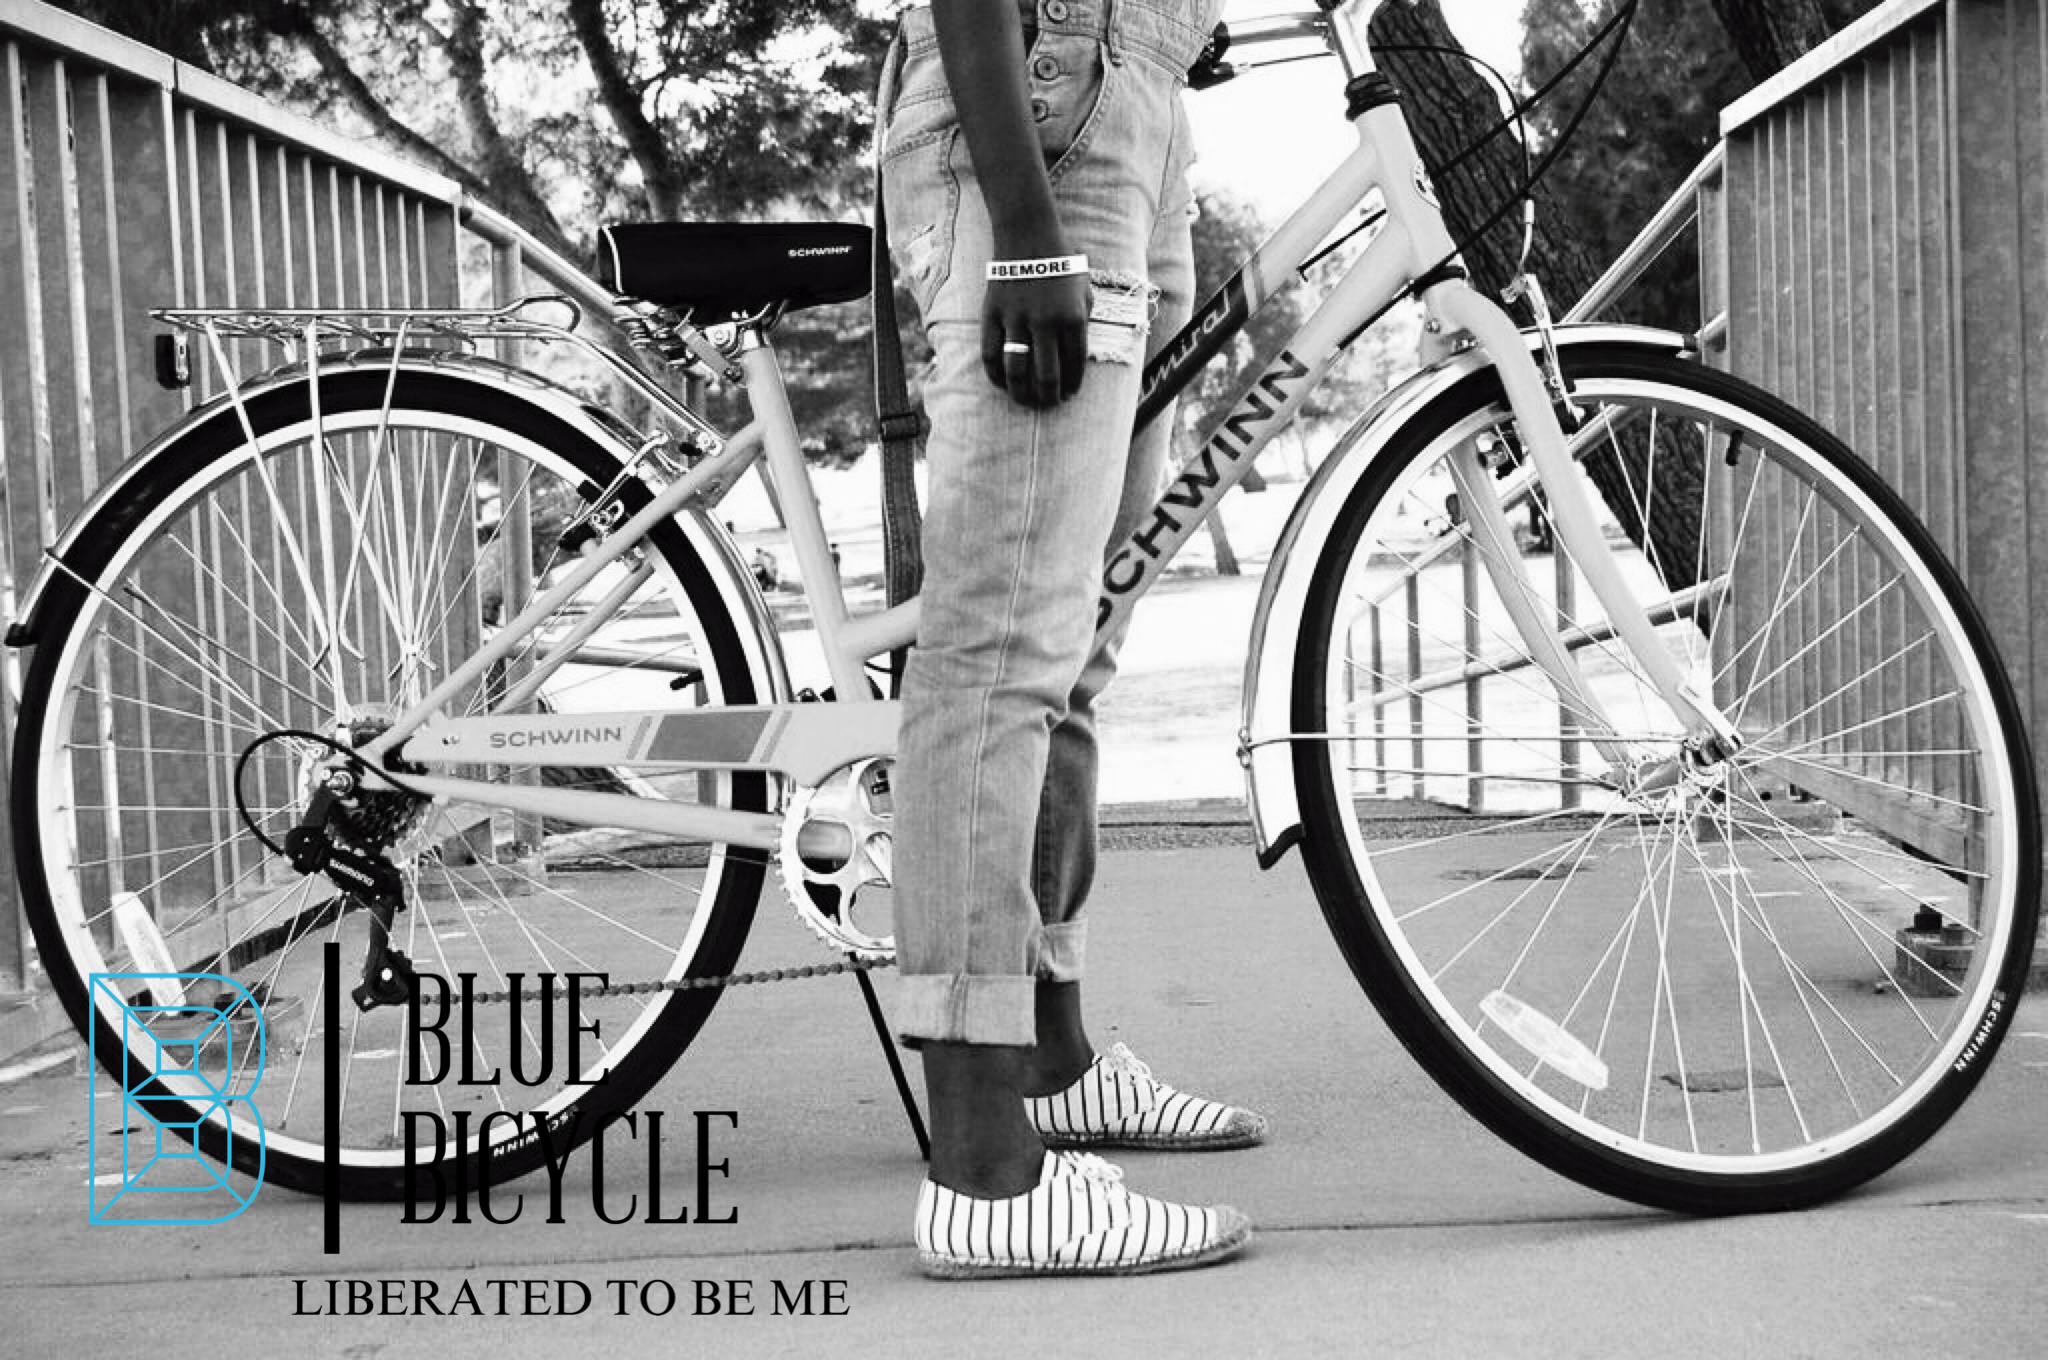 Blue Bicycle Blog Contact